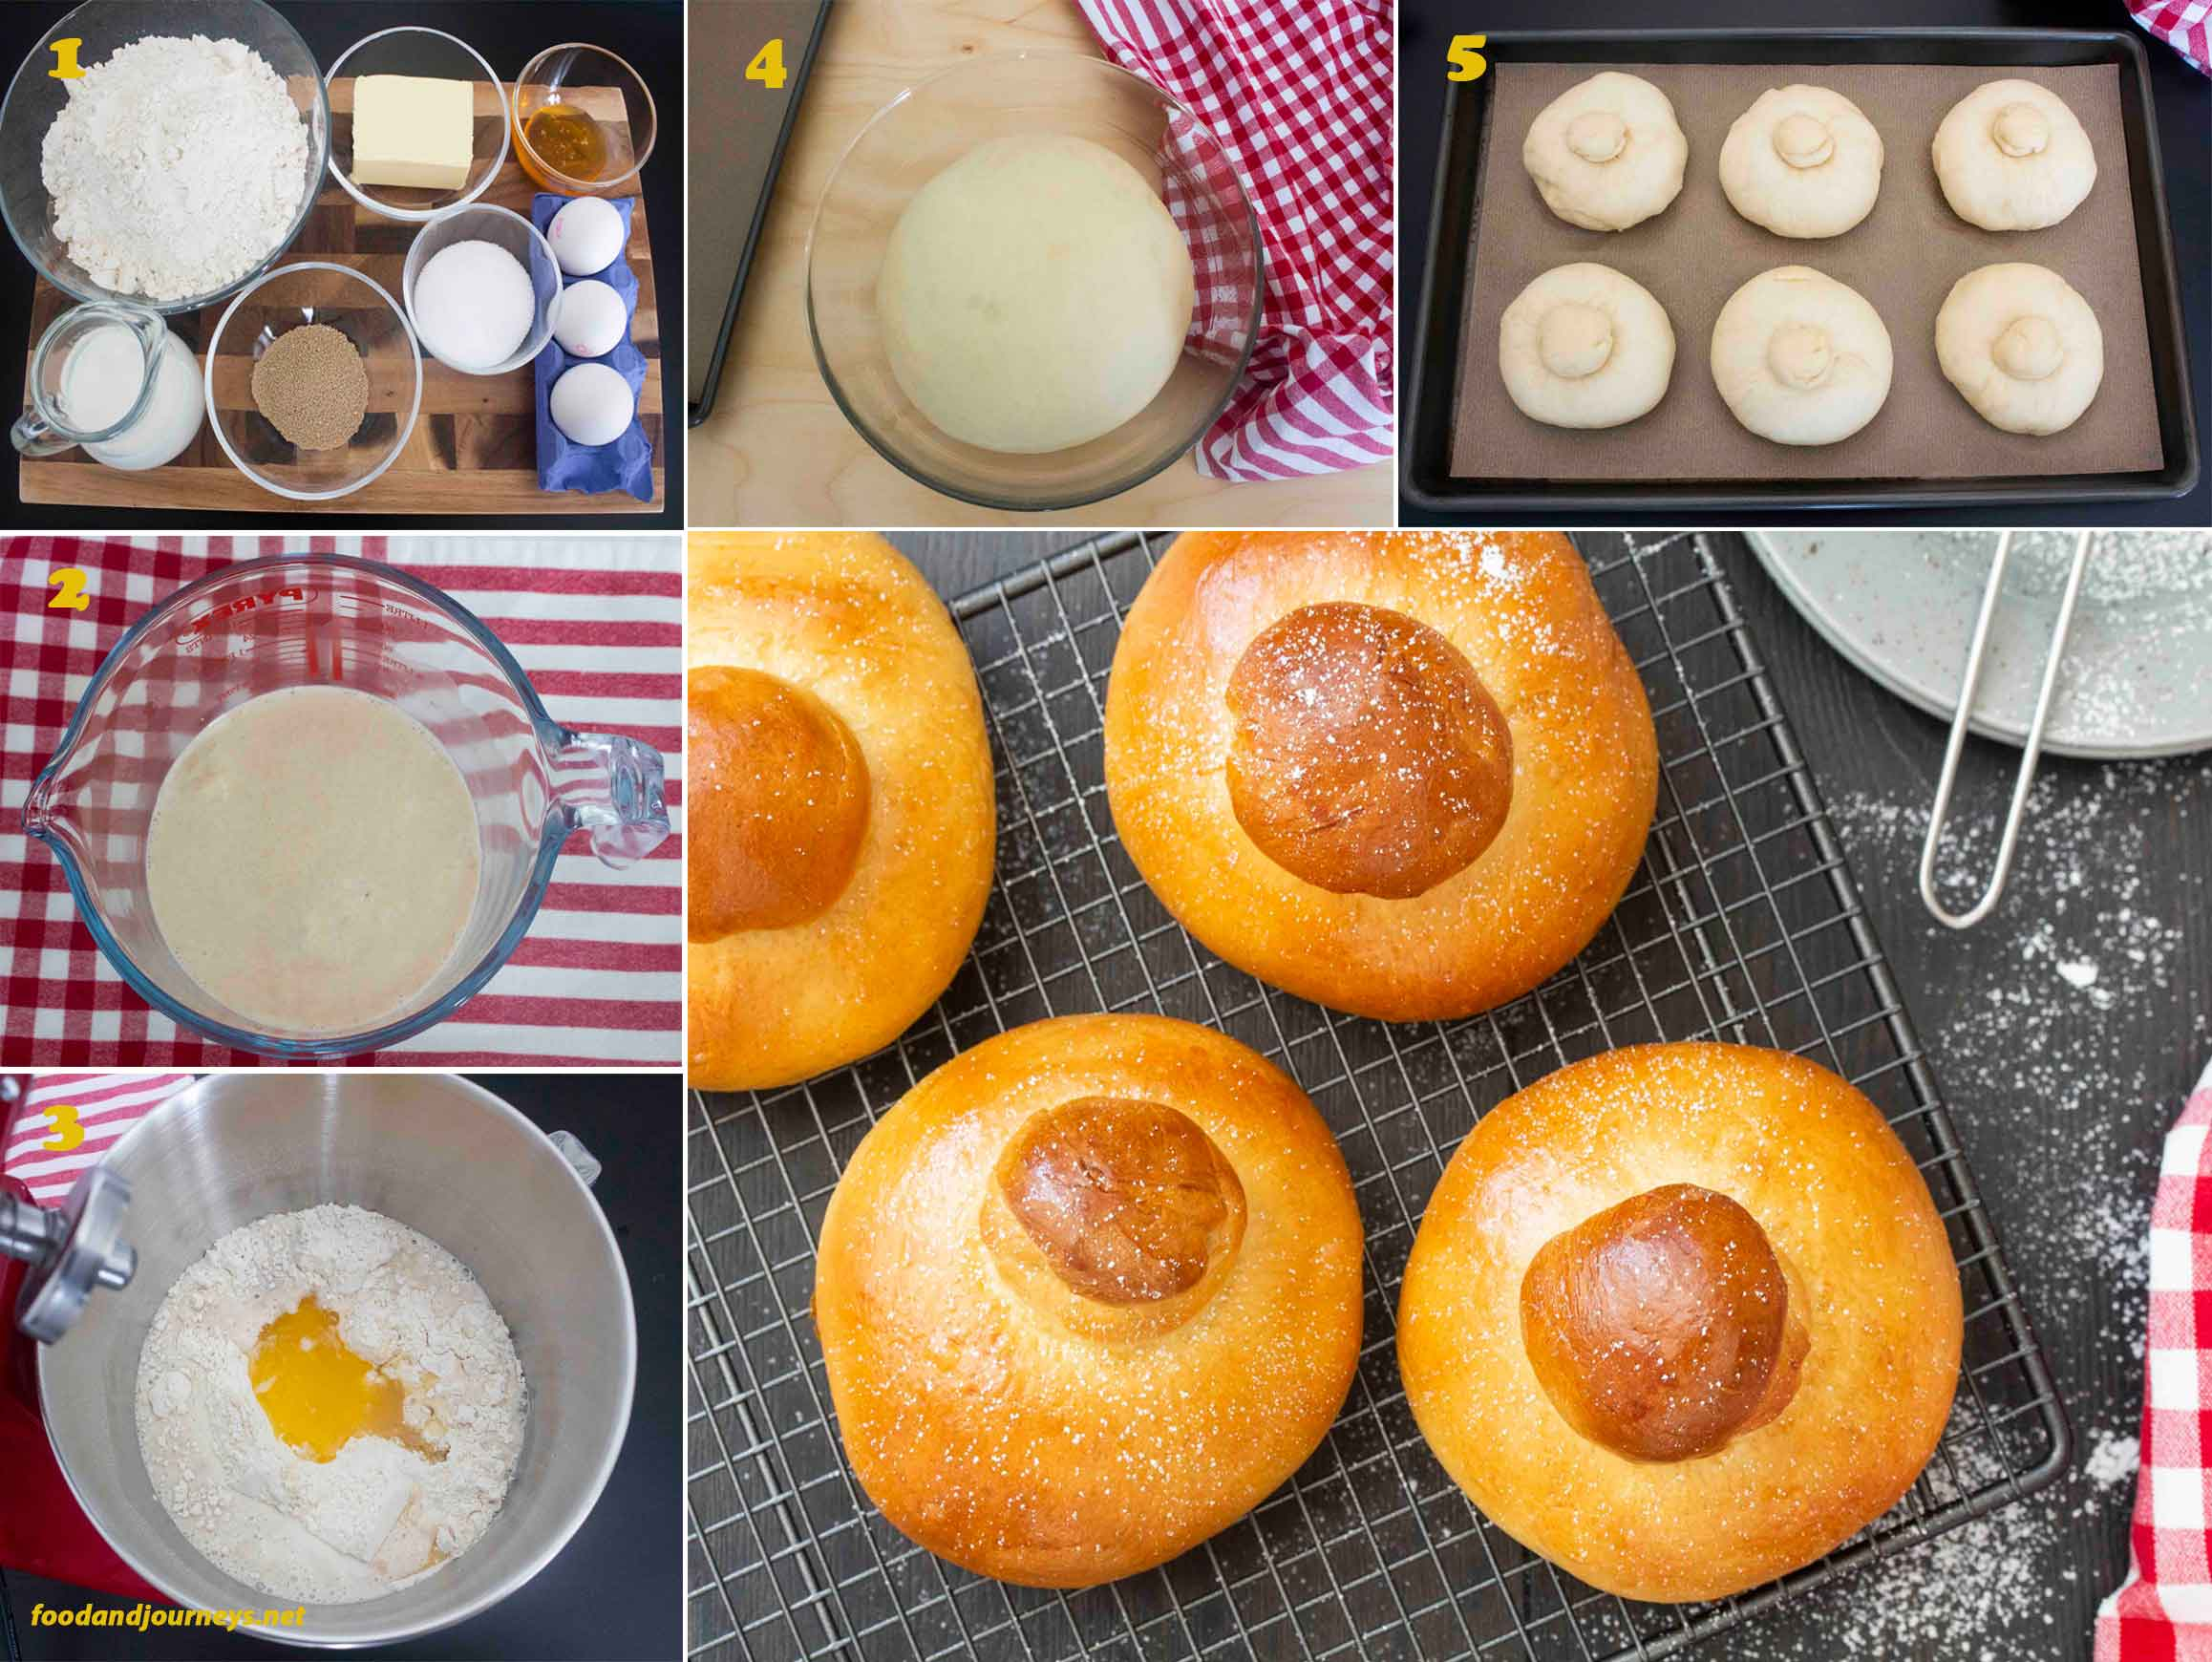 A collage of images showing the step by step process on how to make Sicilian Brioche